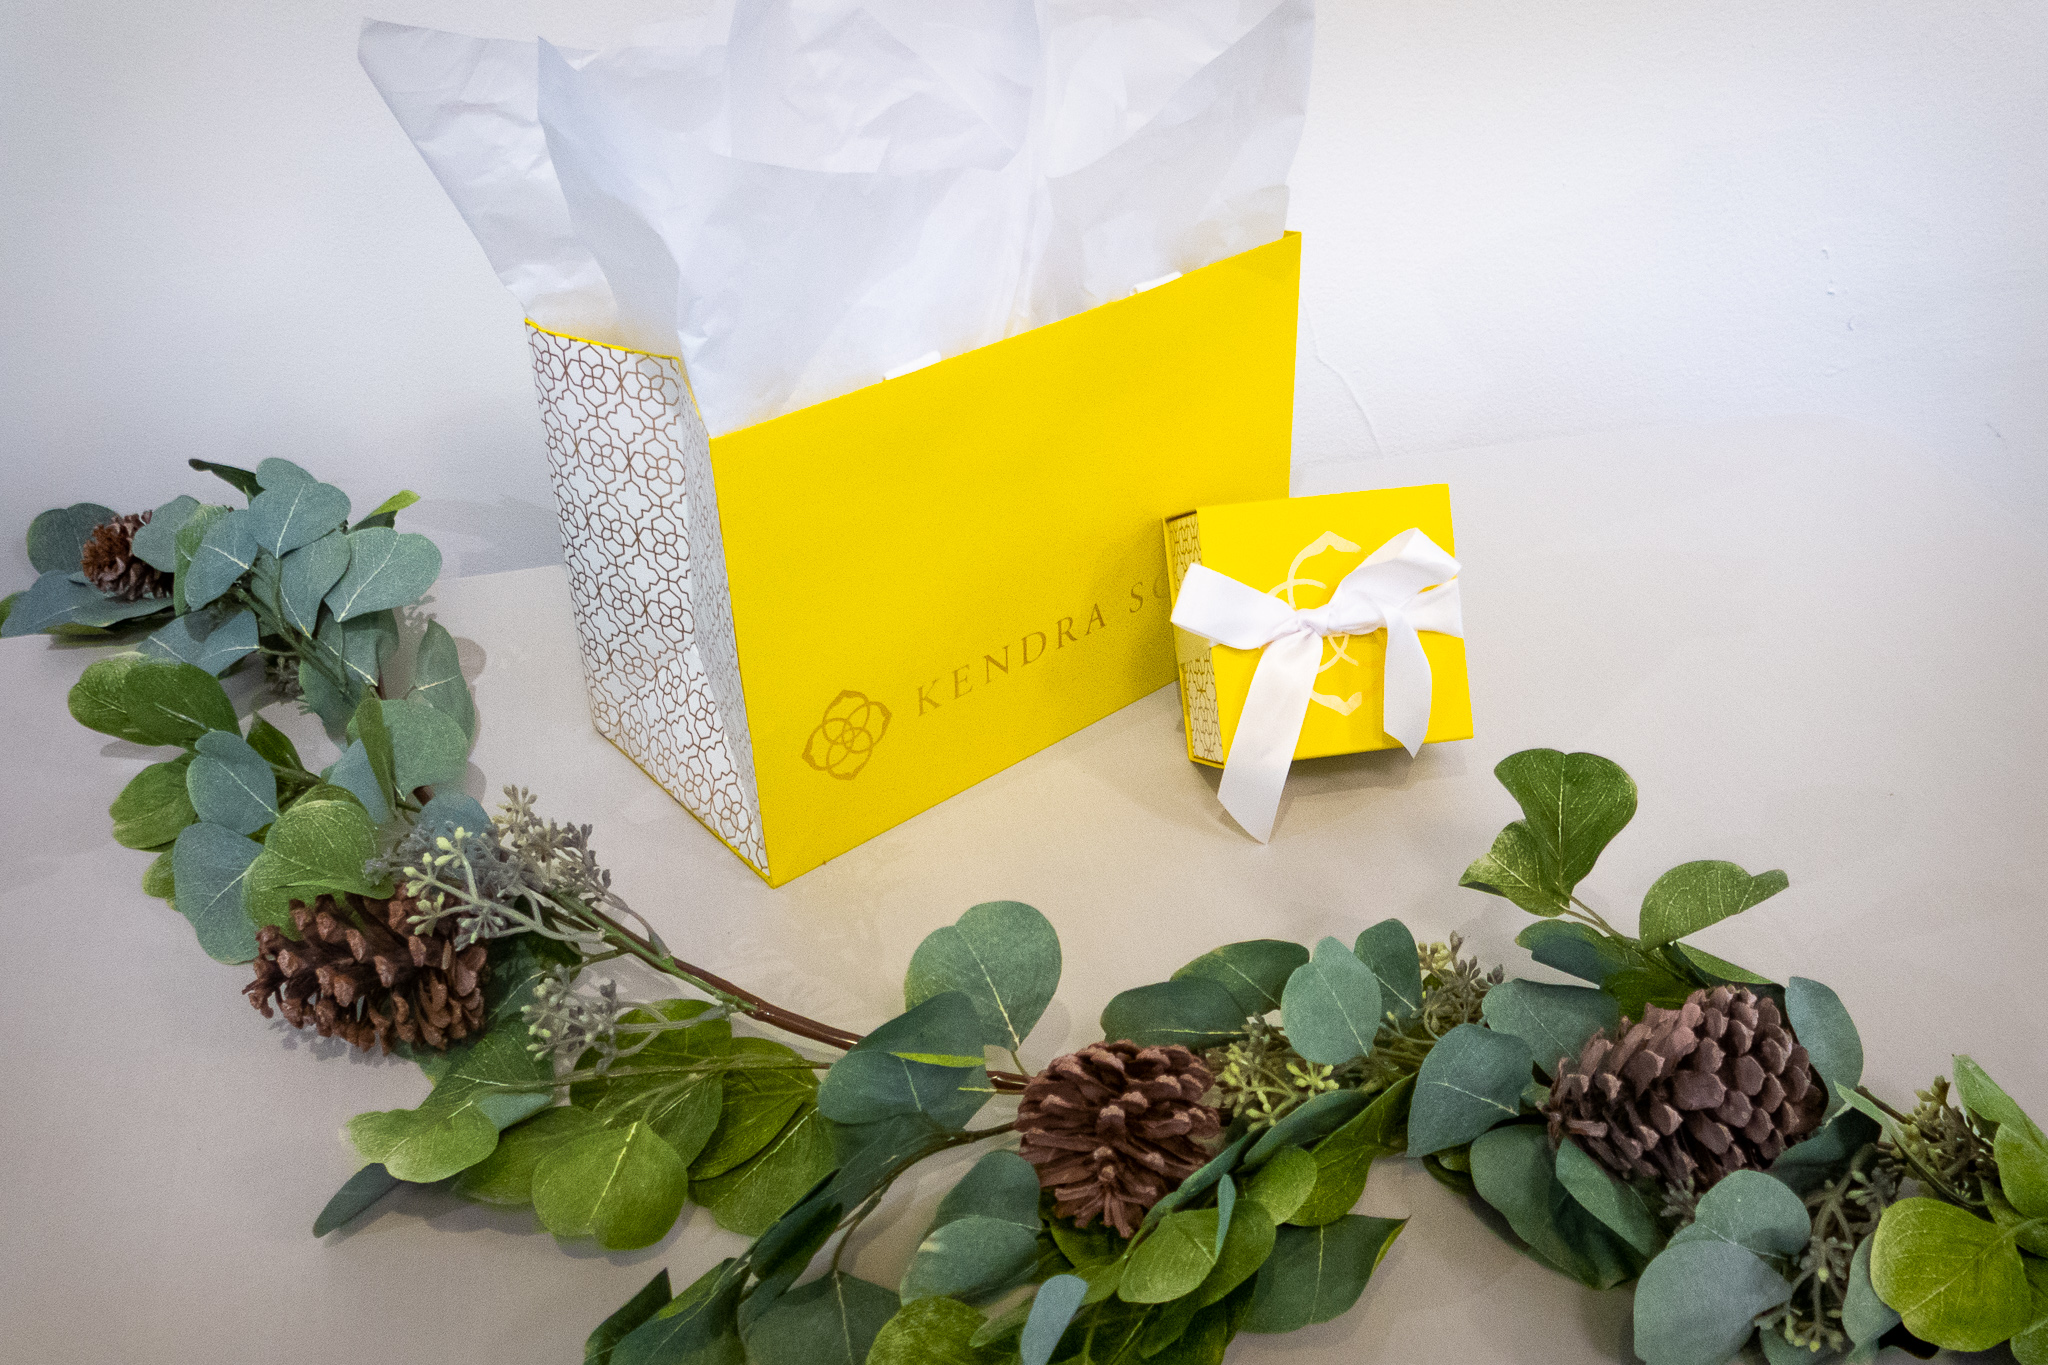 Kendra Scott Fine Jewelry has donated to our Raffle! Sign up for the OAc Mailing List for a chance to win!